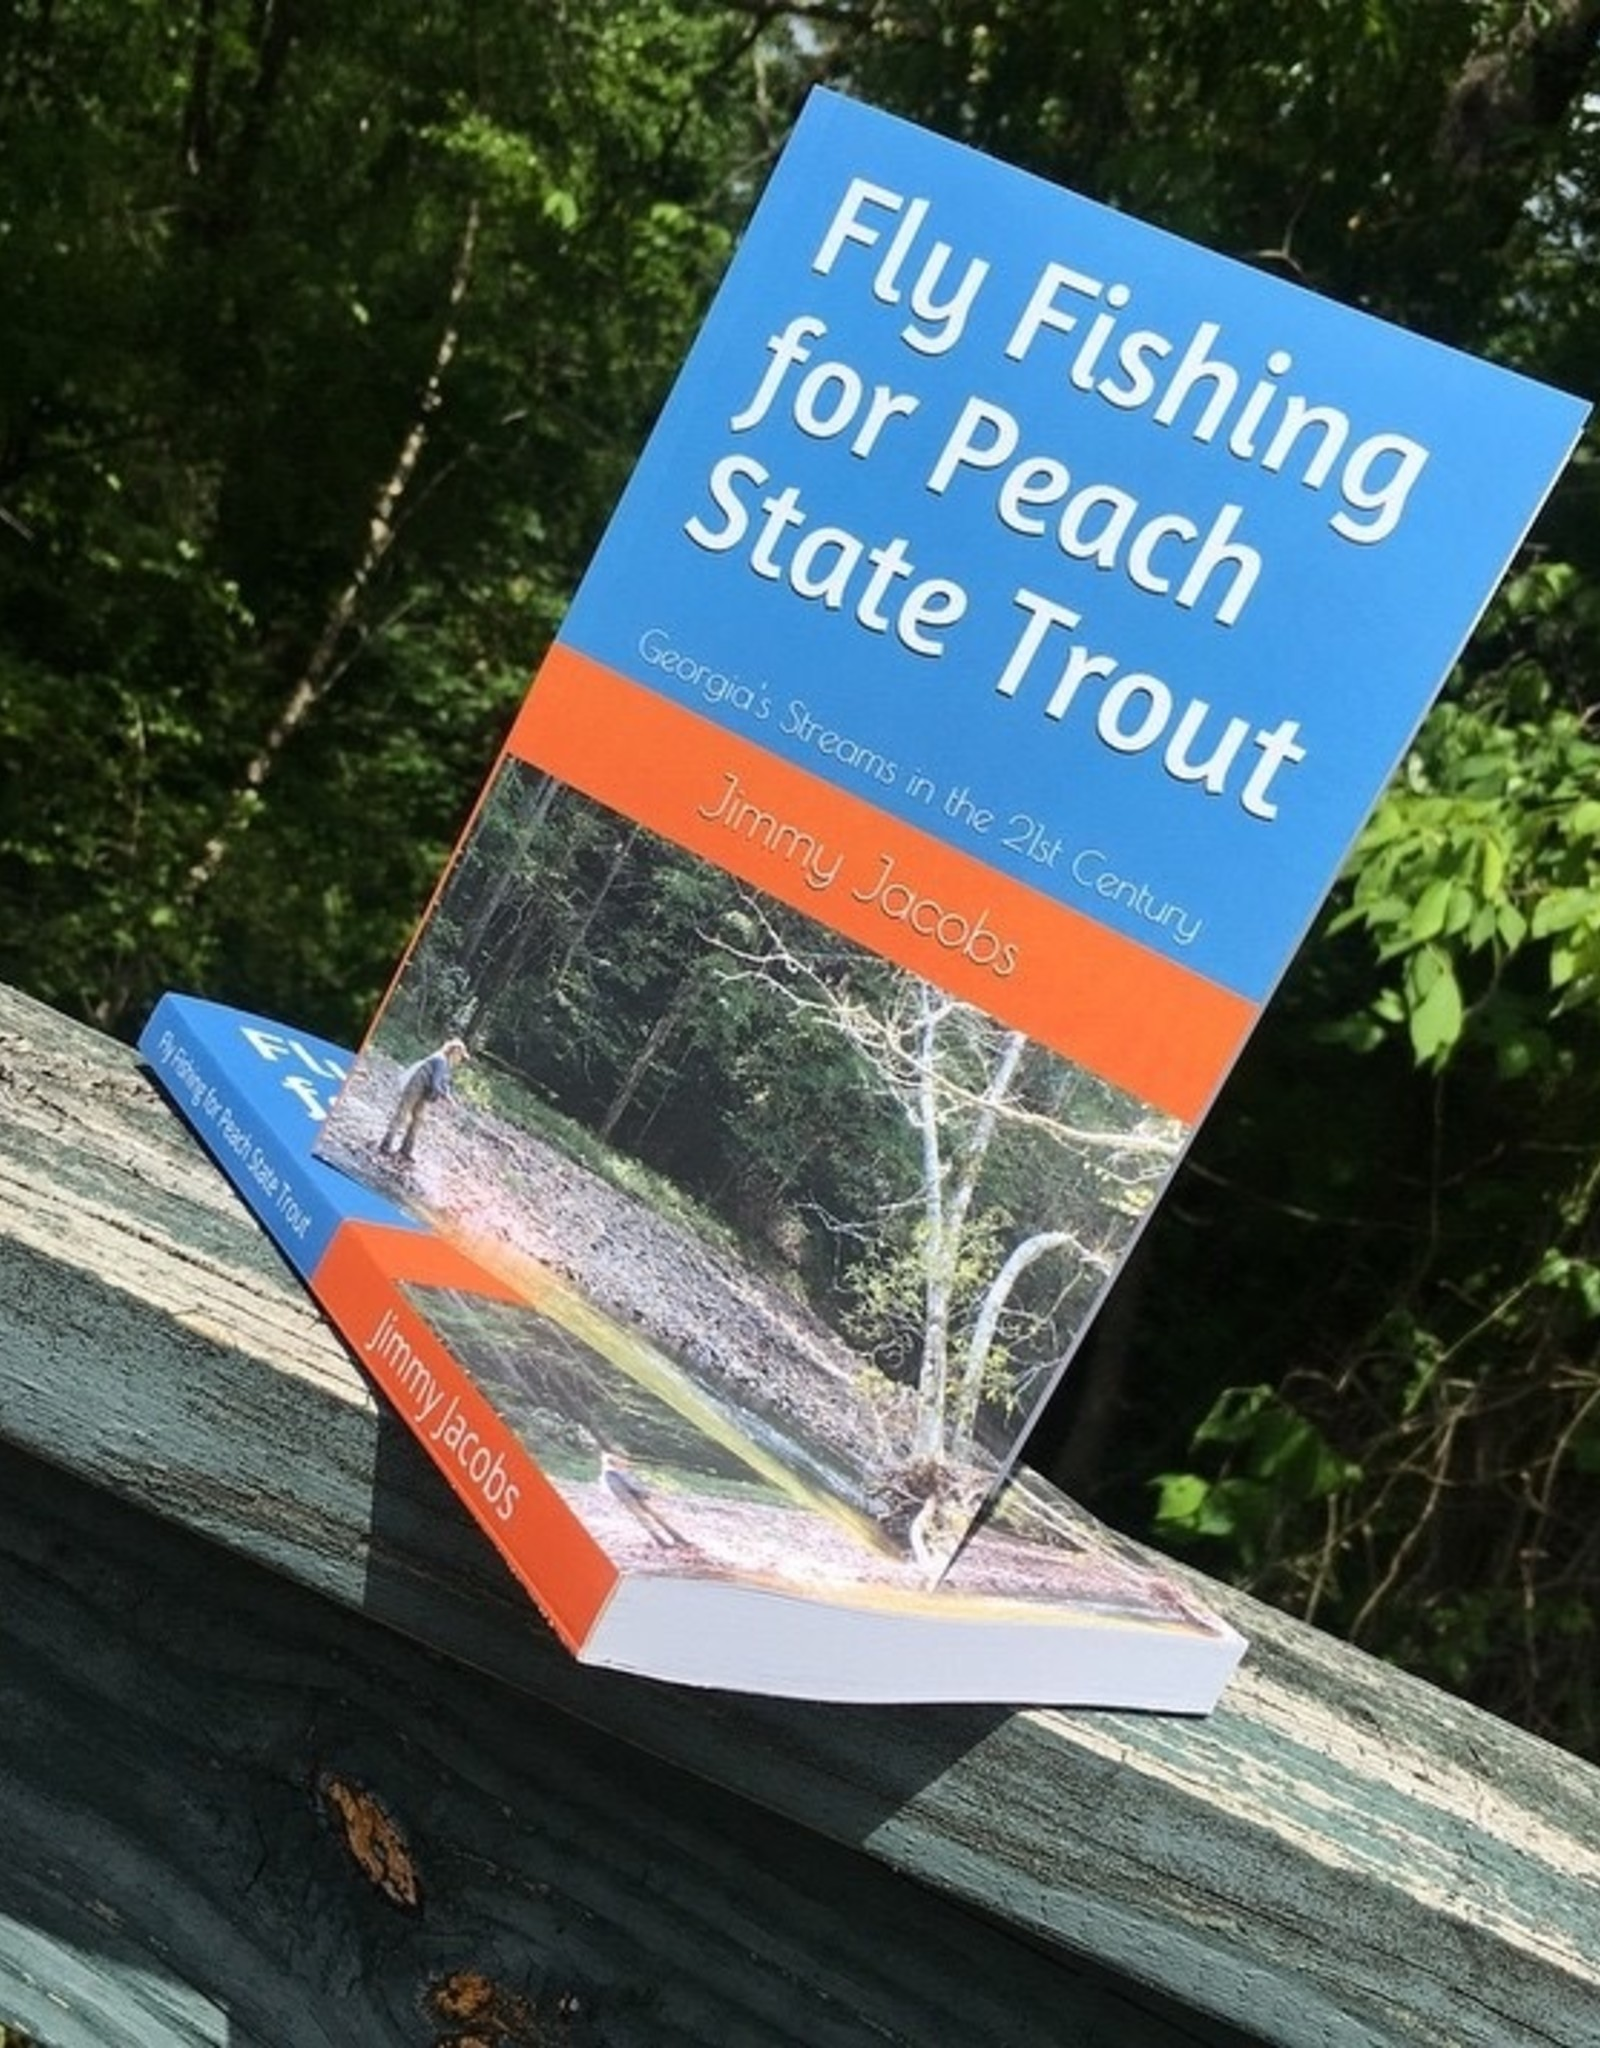 Fly Fishing For Peach State Trout - Jimmy Jacobs